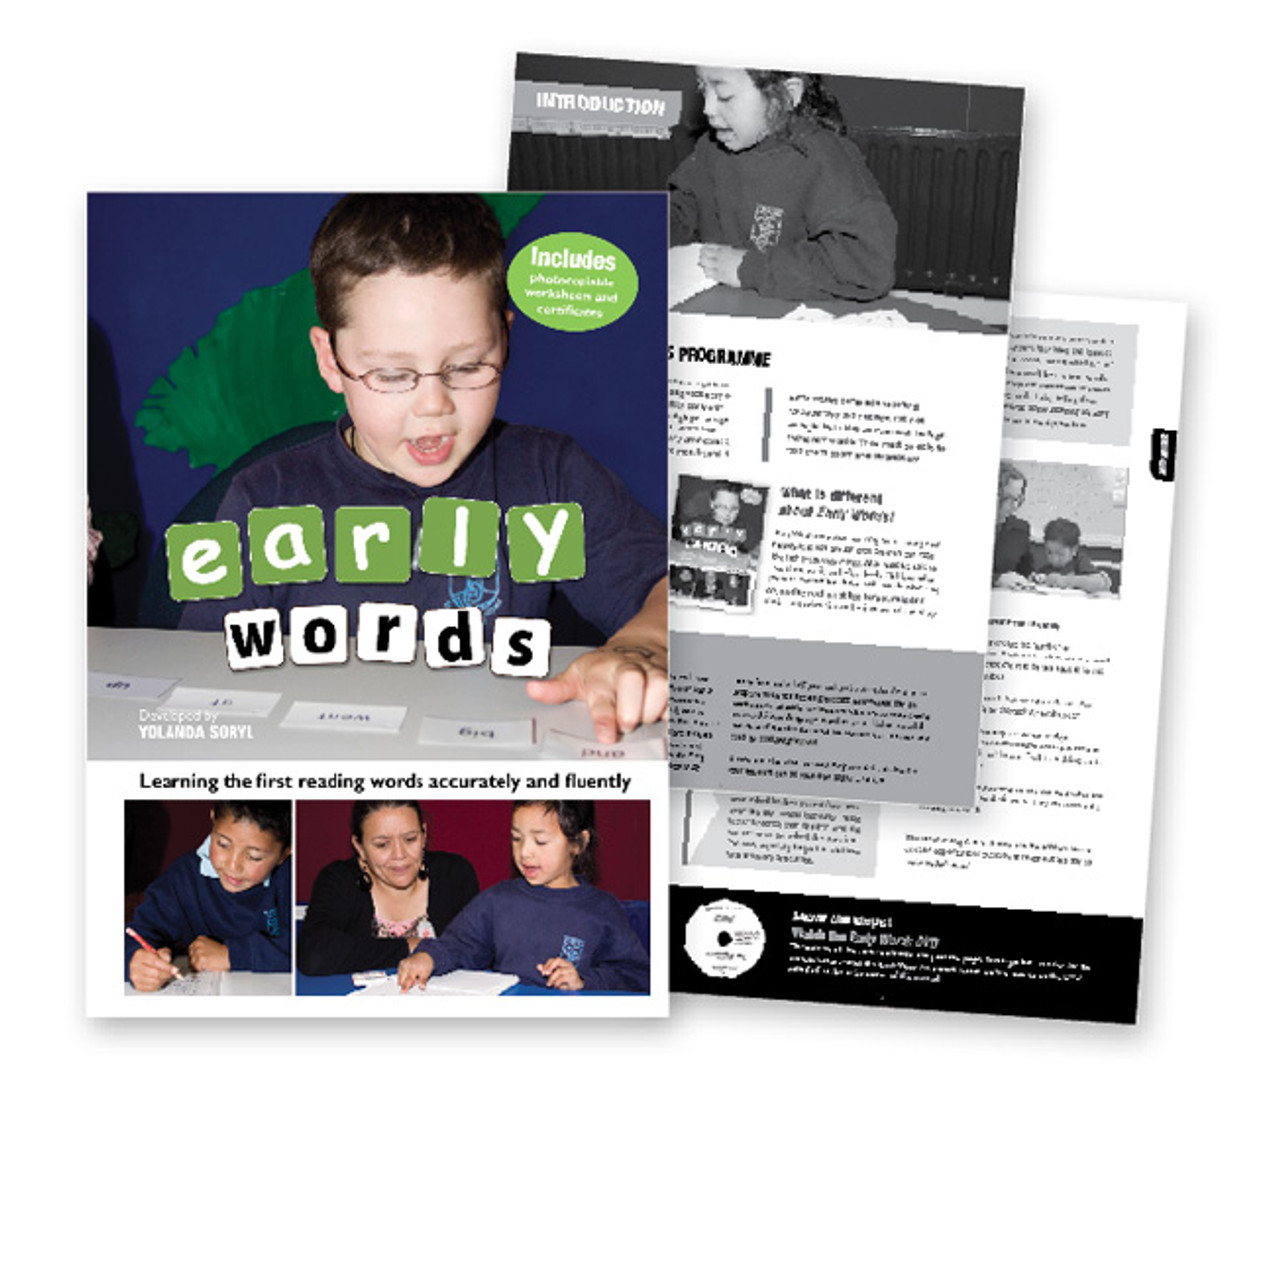 Early Words - Learning the first reading words accurately and fluently